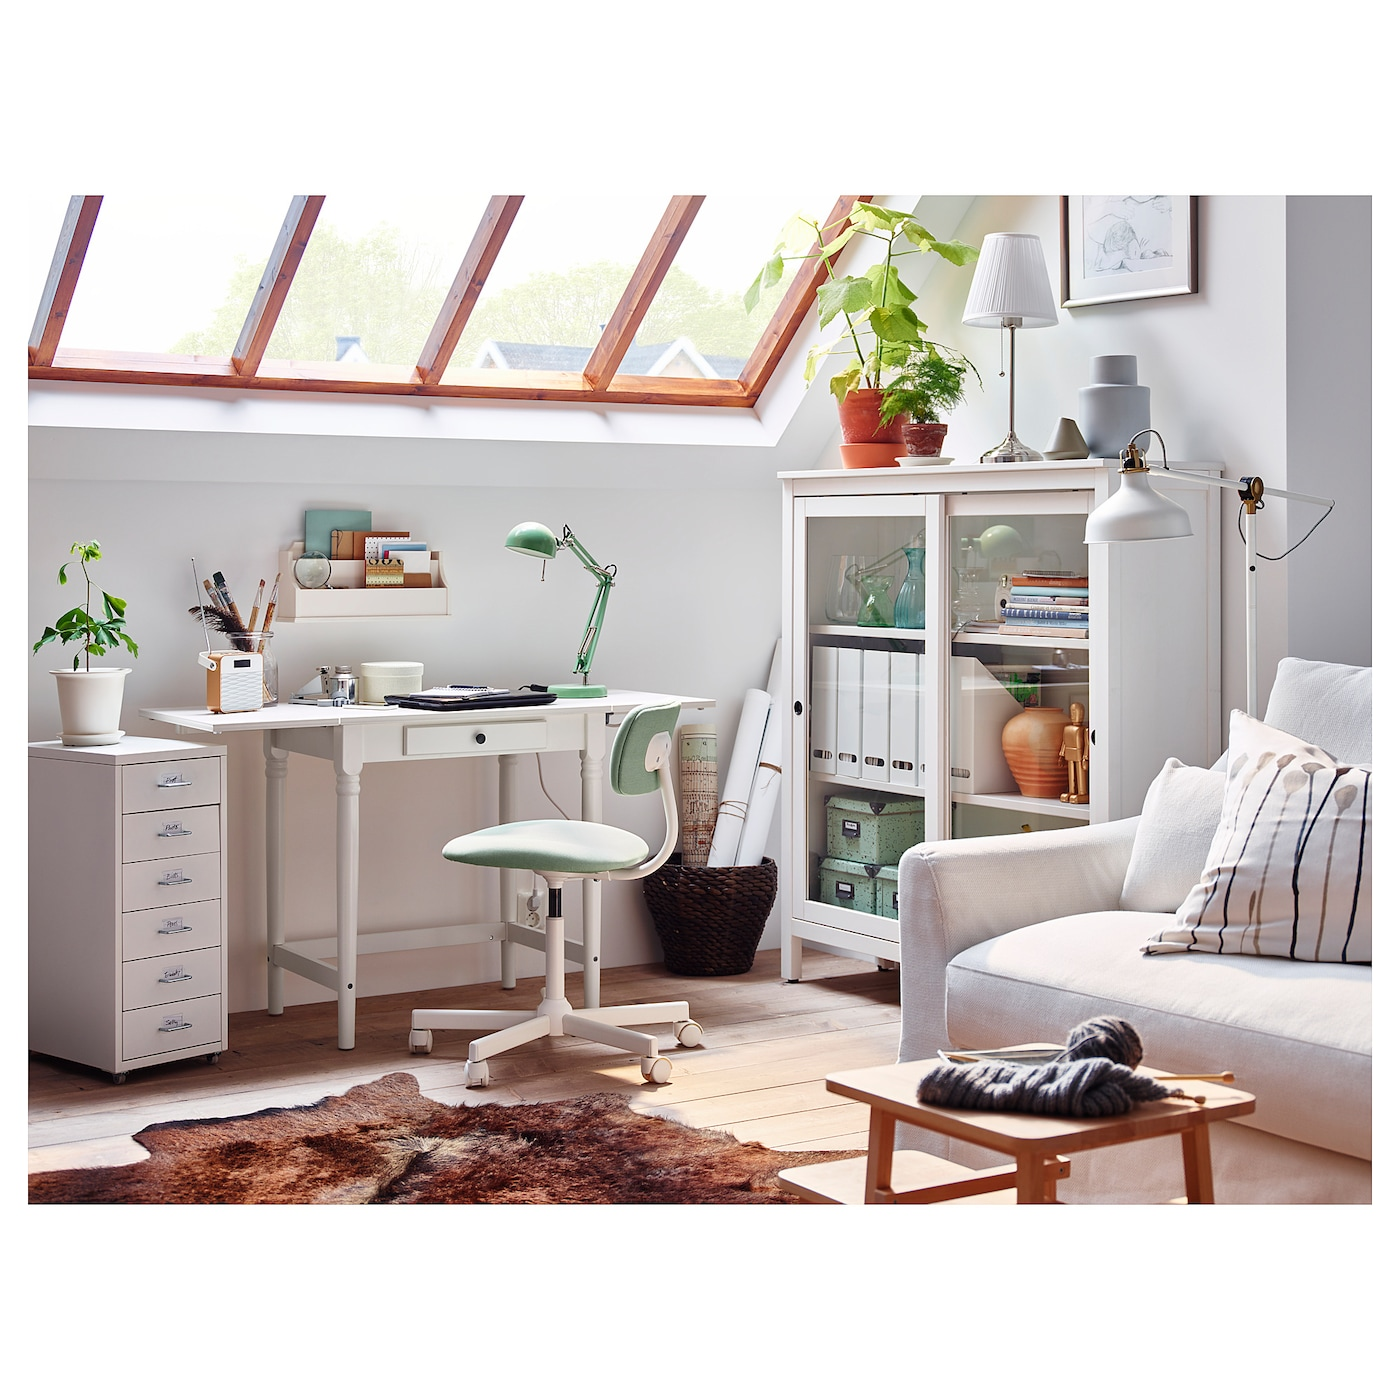 IKEA INGATORP desk 2 folding drop-leaves allow you to adjust the table size according to your needs.